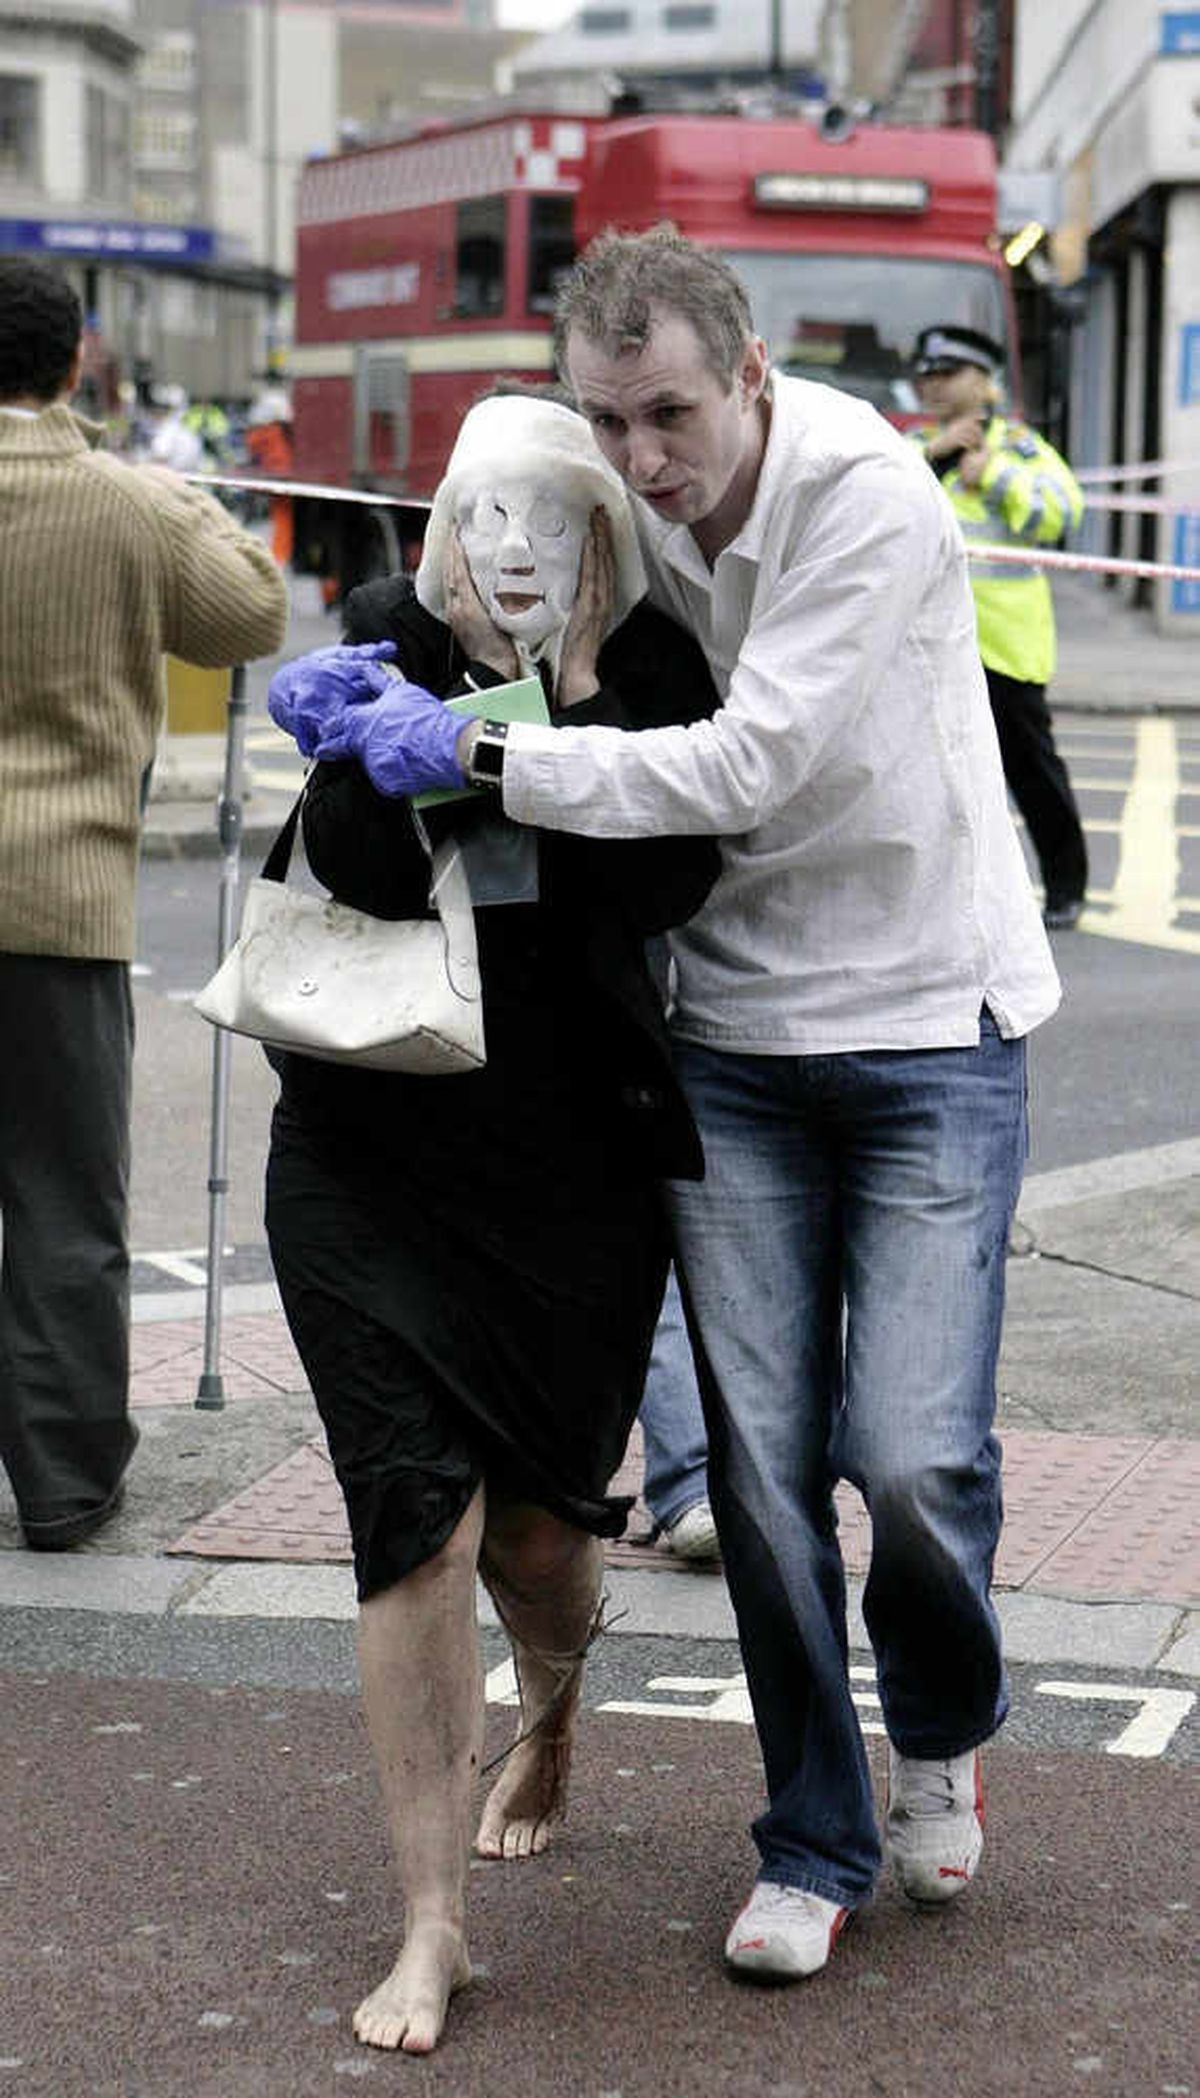 Paul leads Davinia Turrell, wearing a surgical burns mask, to safety after the Edgware Road blast